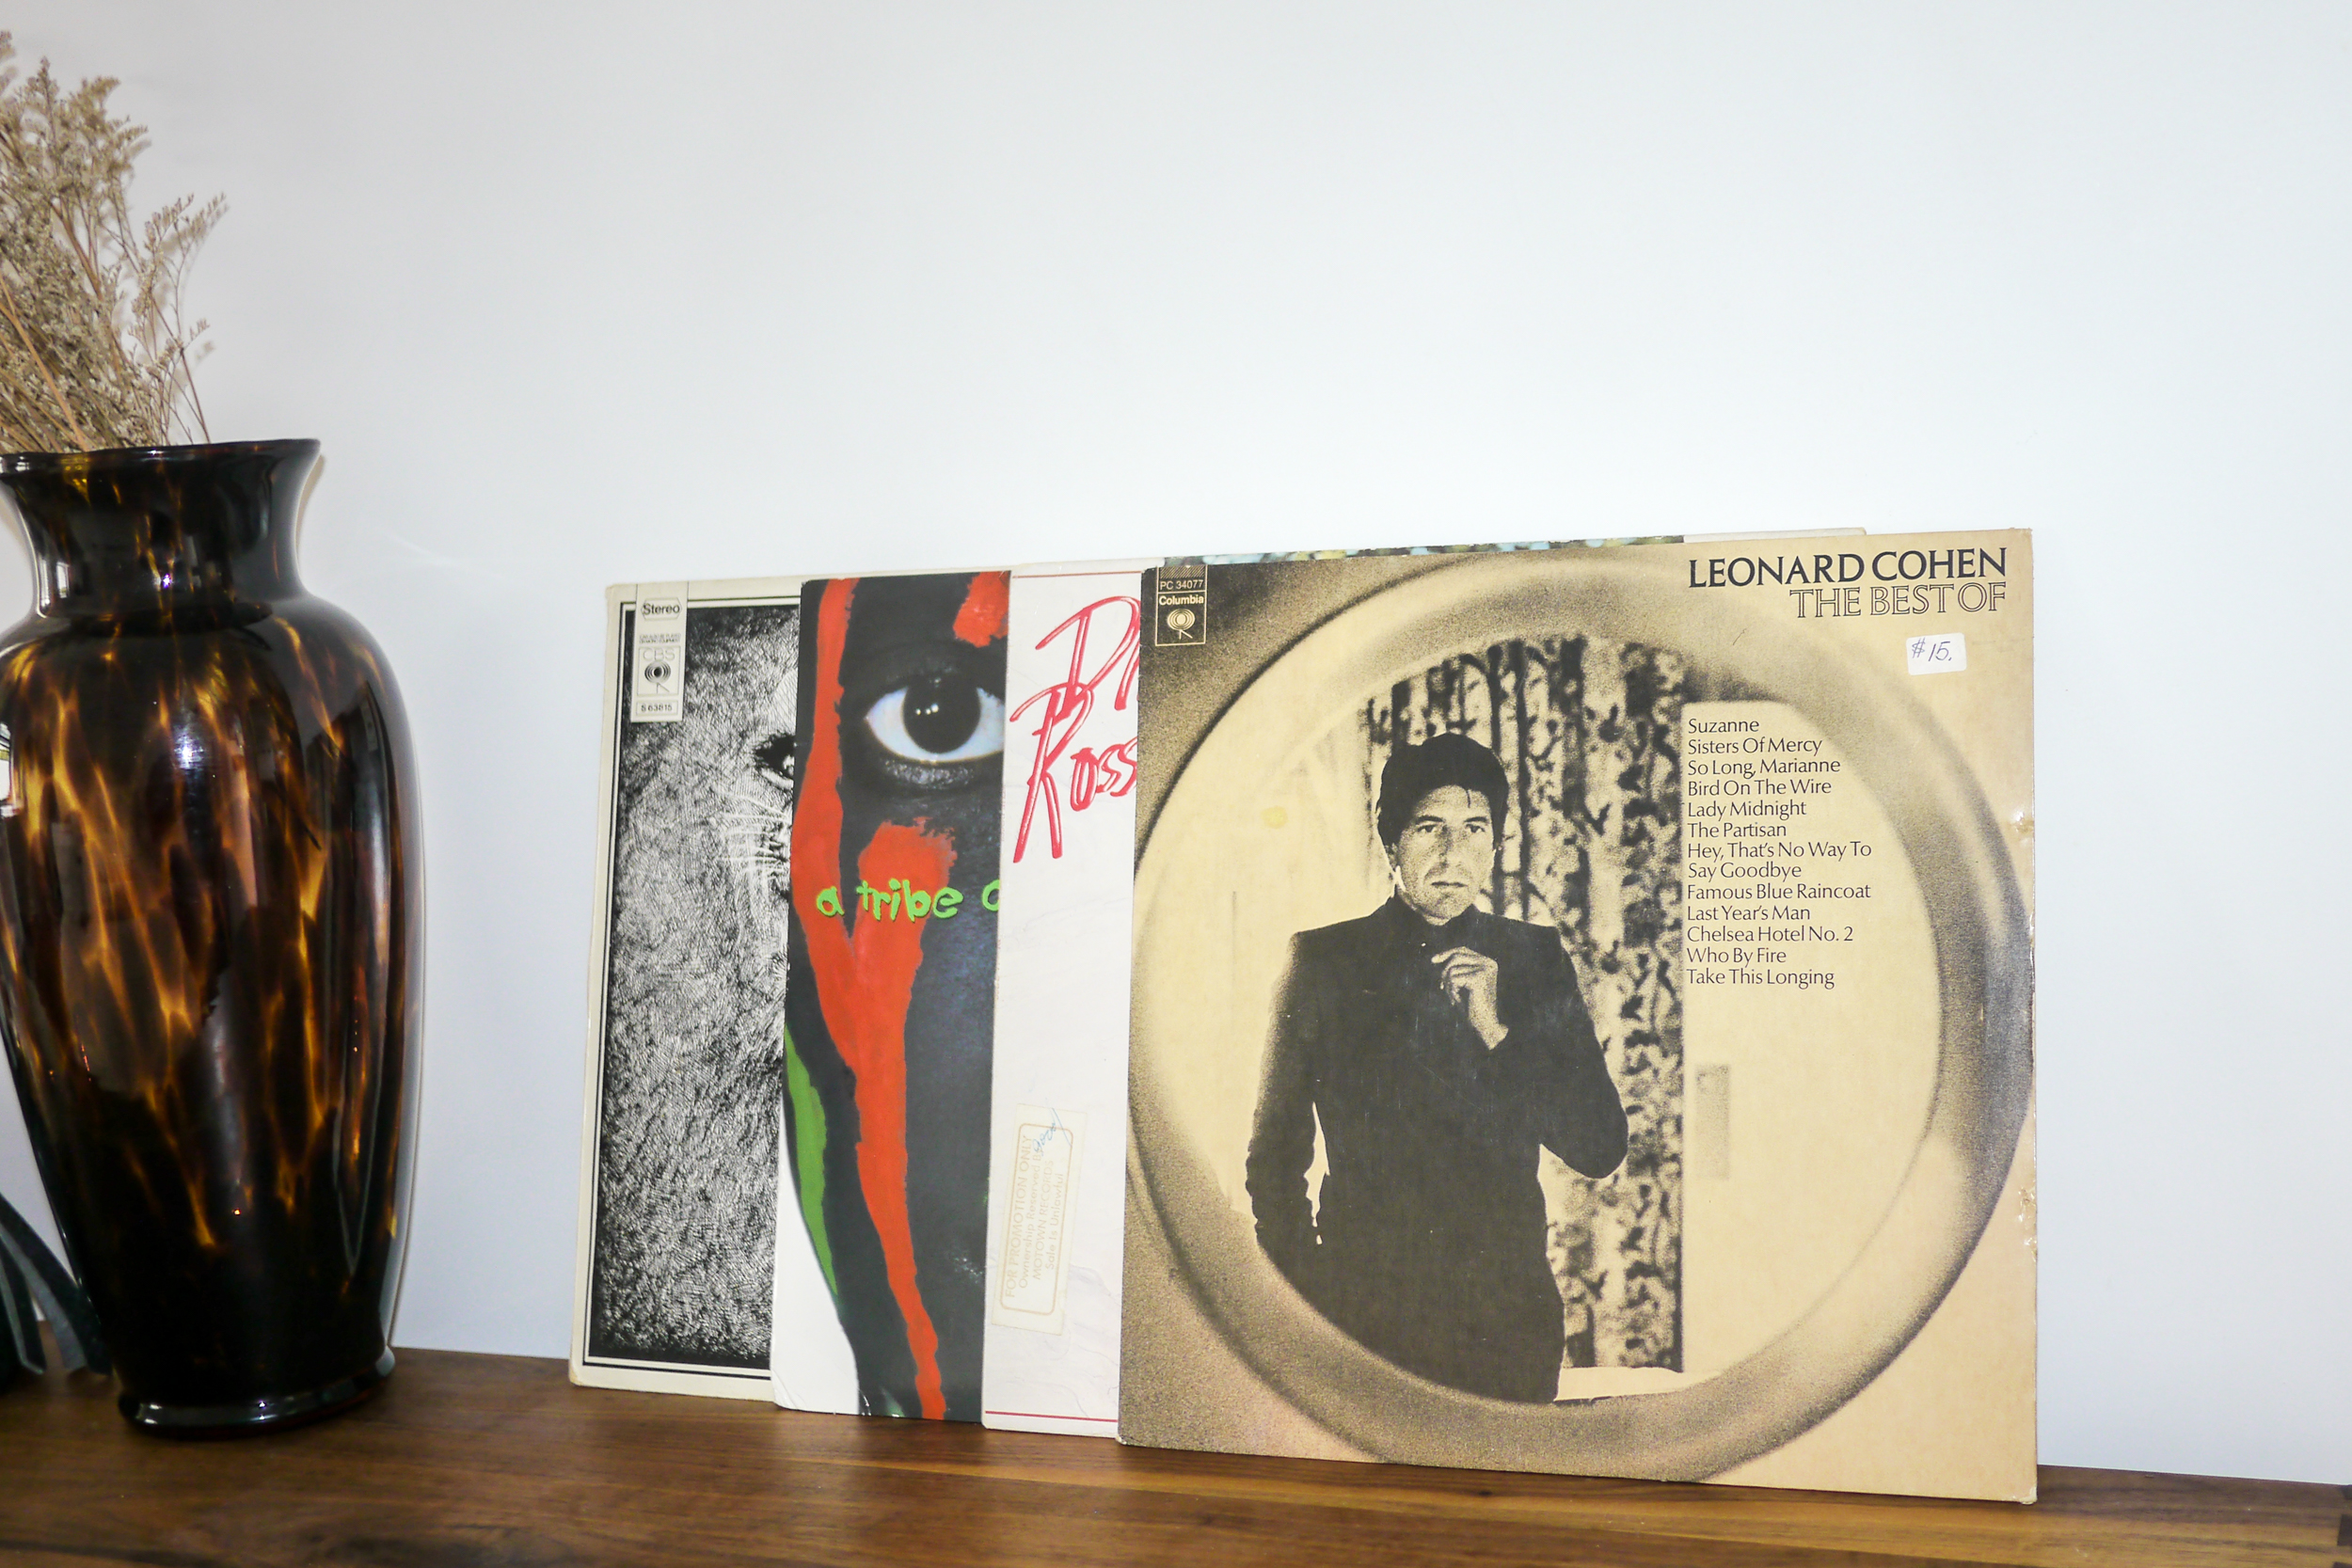 The Best of Leonard Cohen    ;    The Anthology by A Tribe Called Quest    ;    The Boss by Diana Ross    ;    Santana